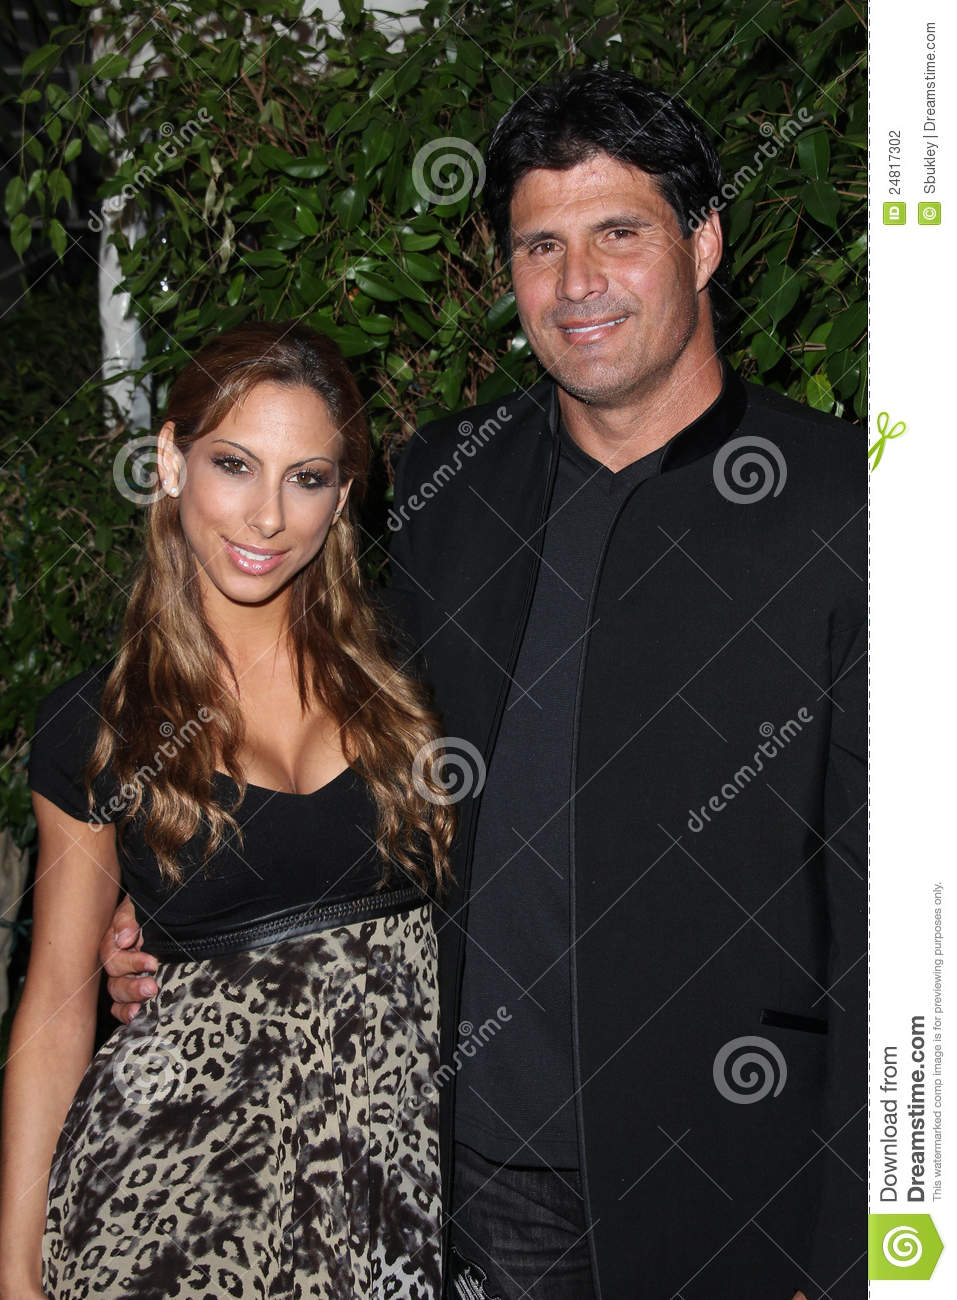 Jose Canseco,Four Seasons